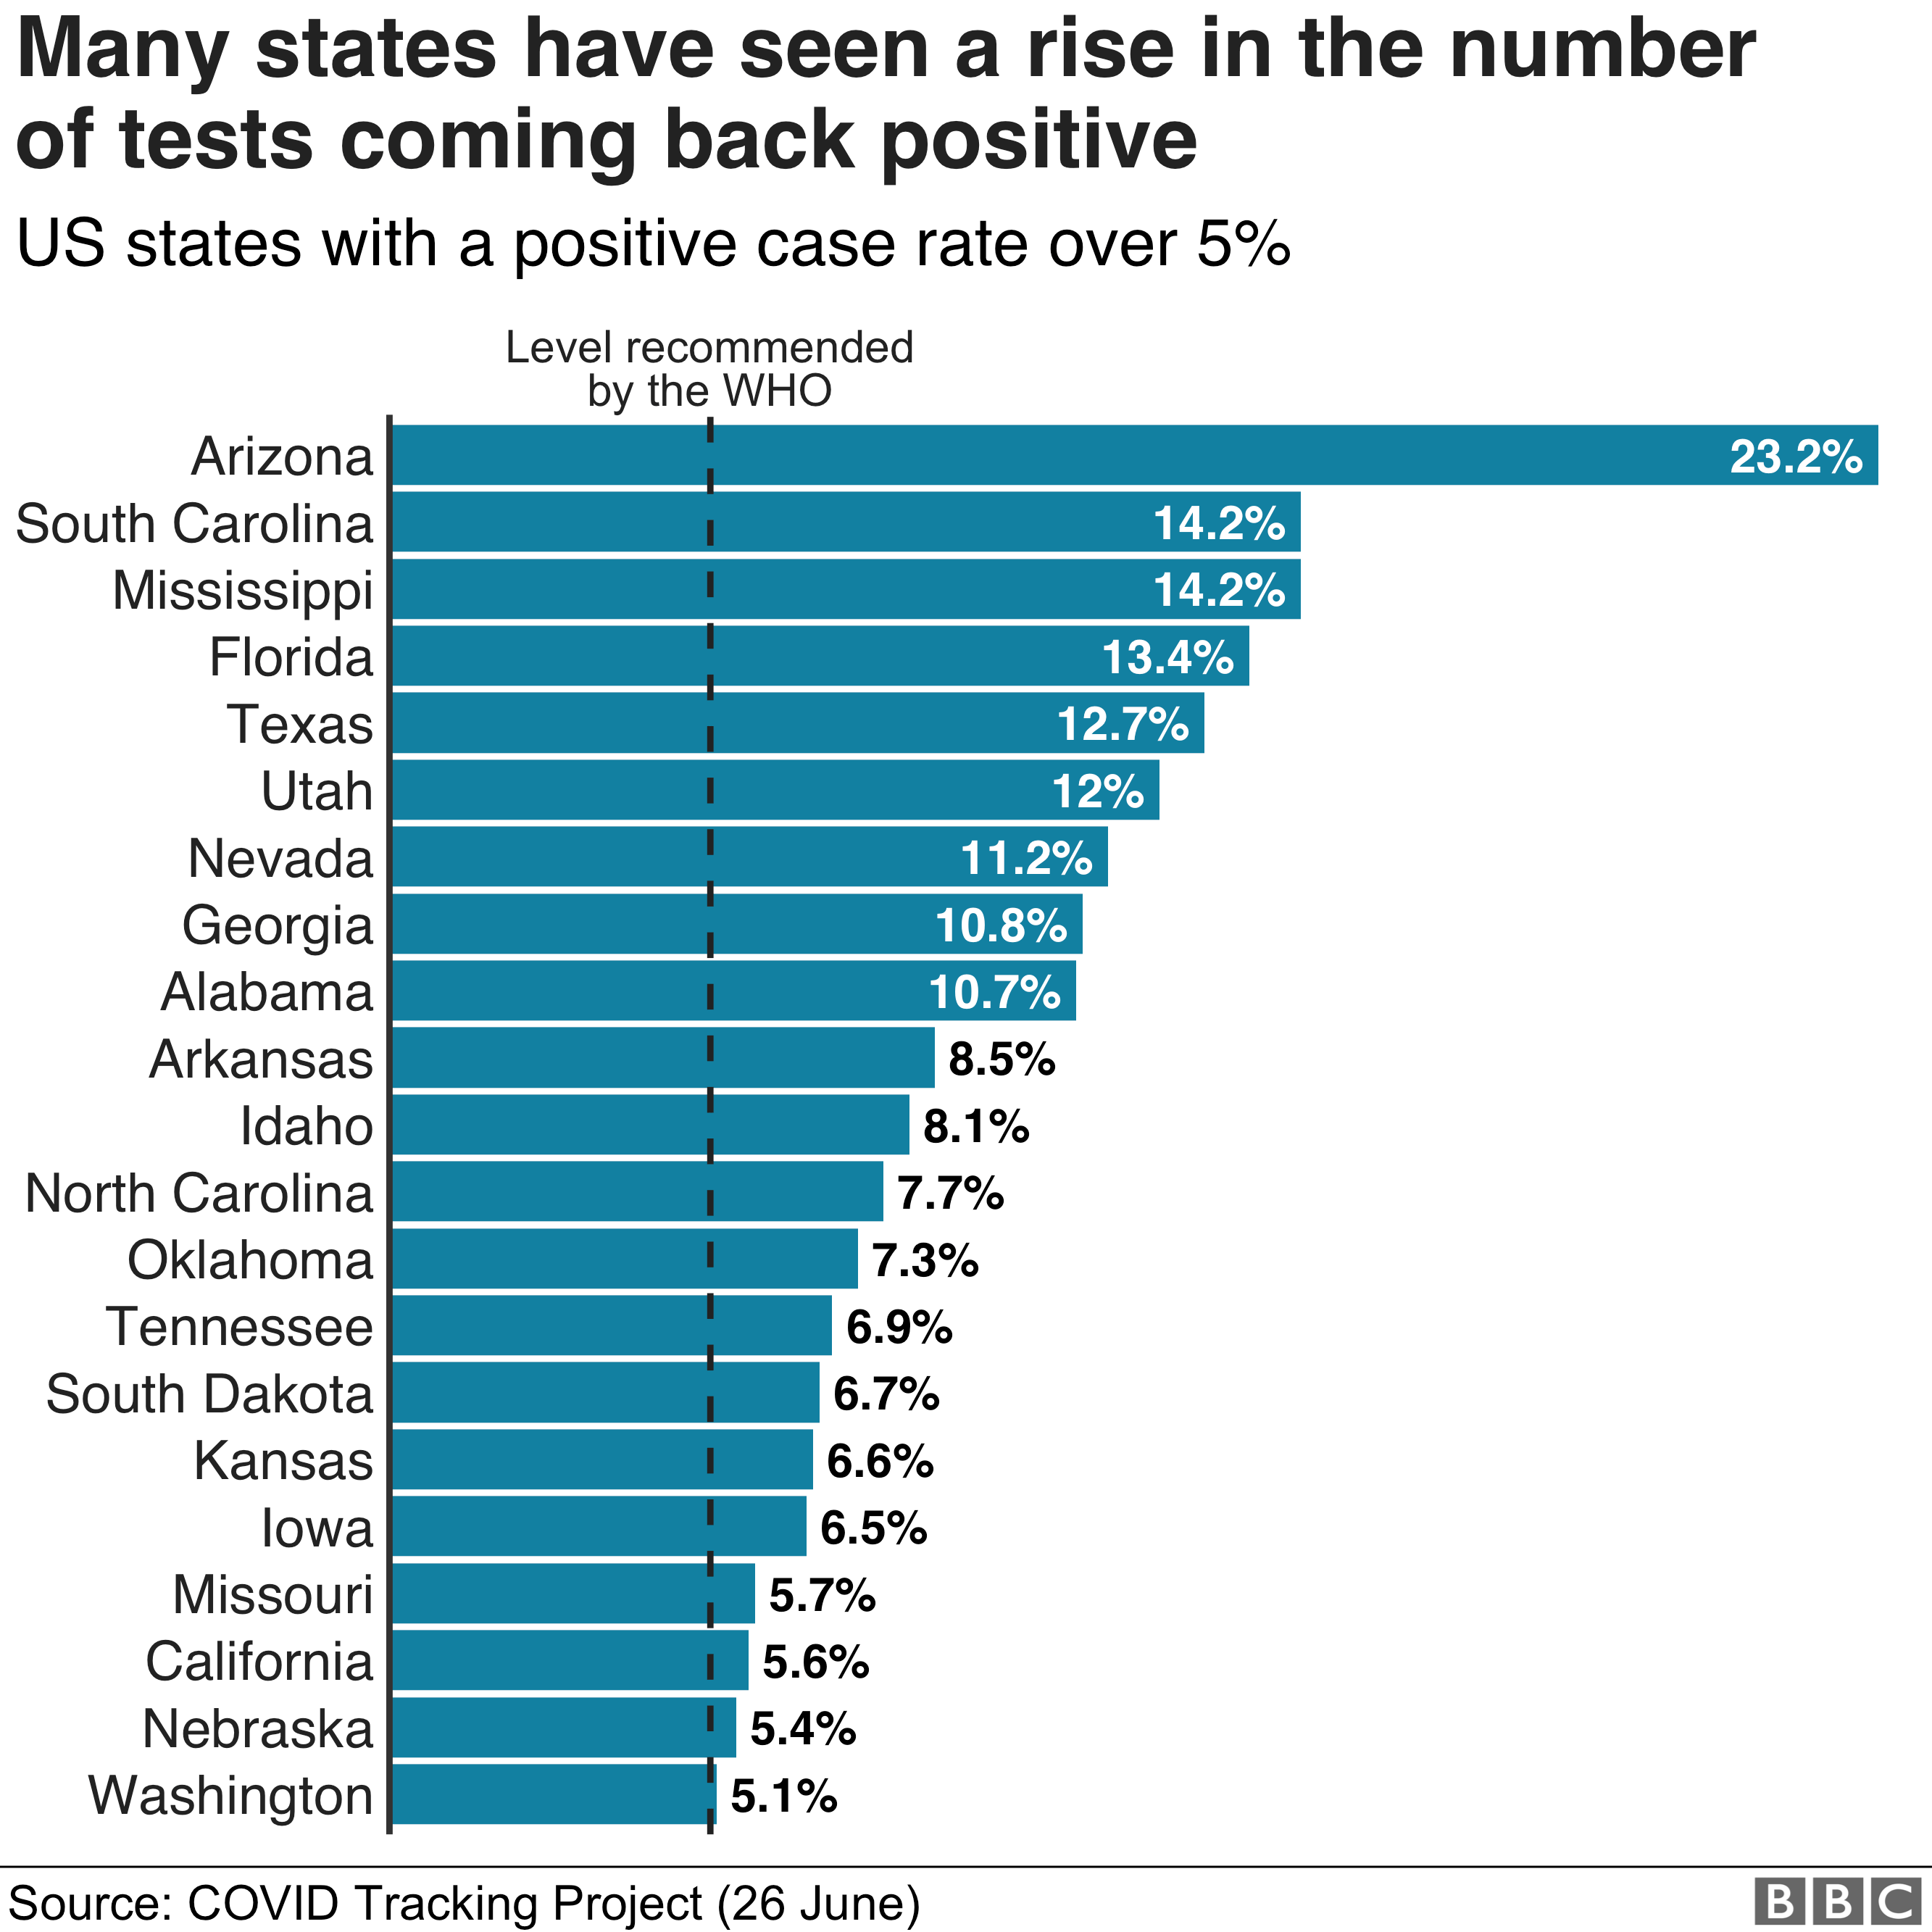 Chart showing the positive case rate for states that are over 5%